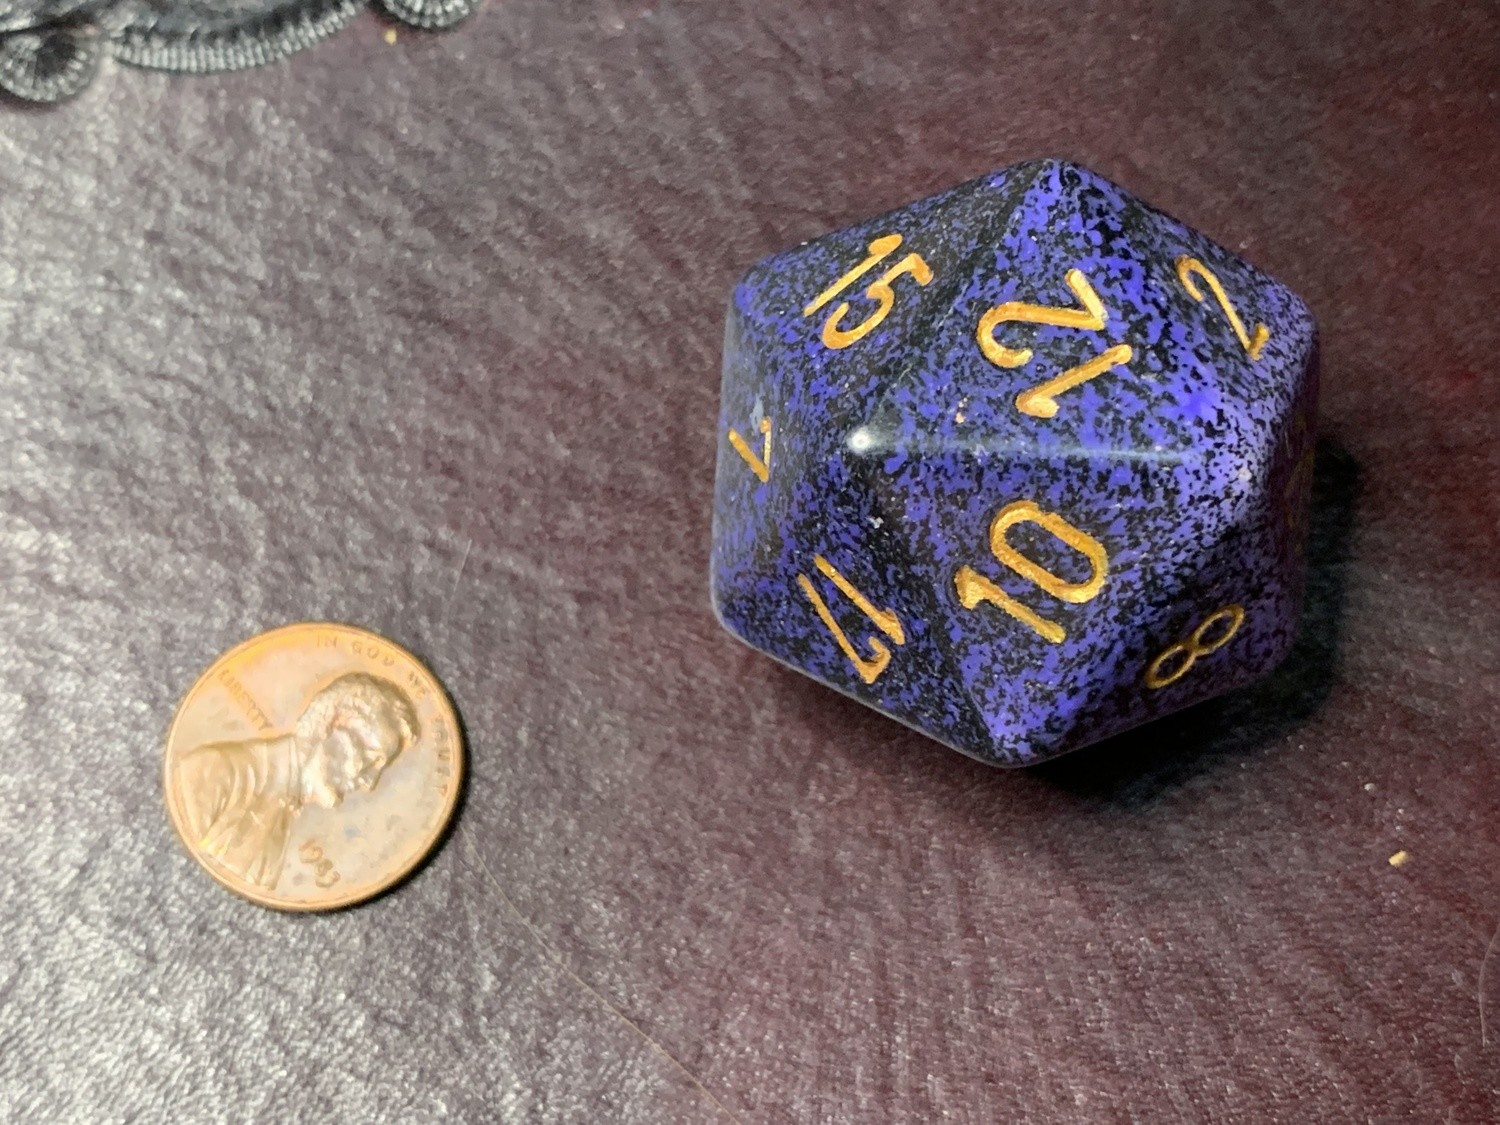 Jumbo 34mm Speckled D20 Black & Purple with Gold Extra Large Counter Dice